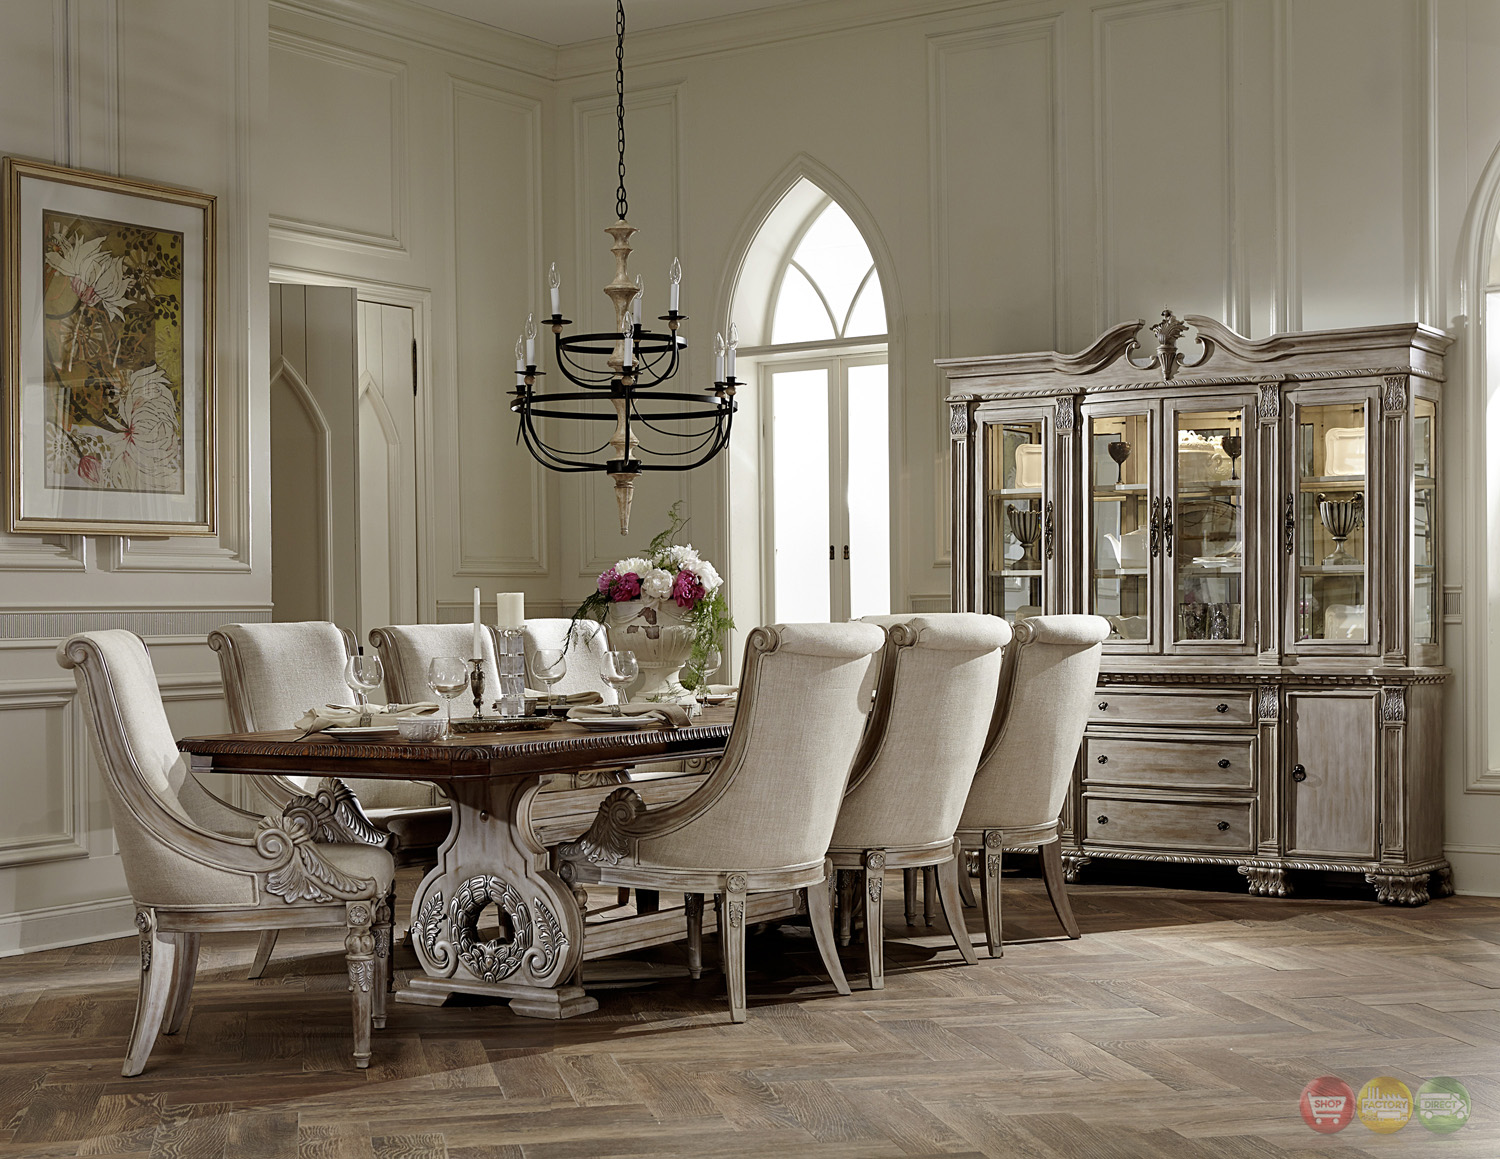 ... Formal Dining Room Sets further Formal Dining Room Ideas. on white